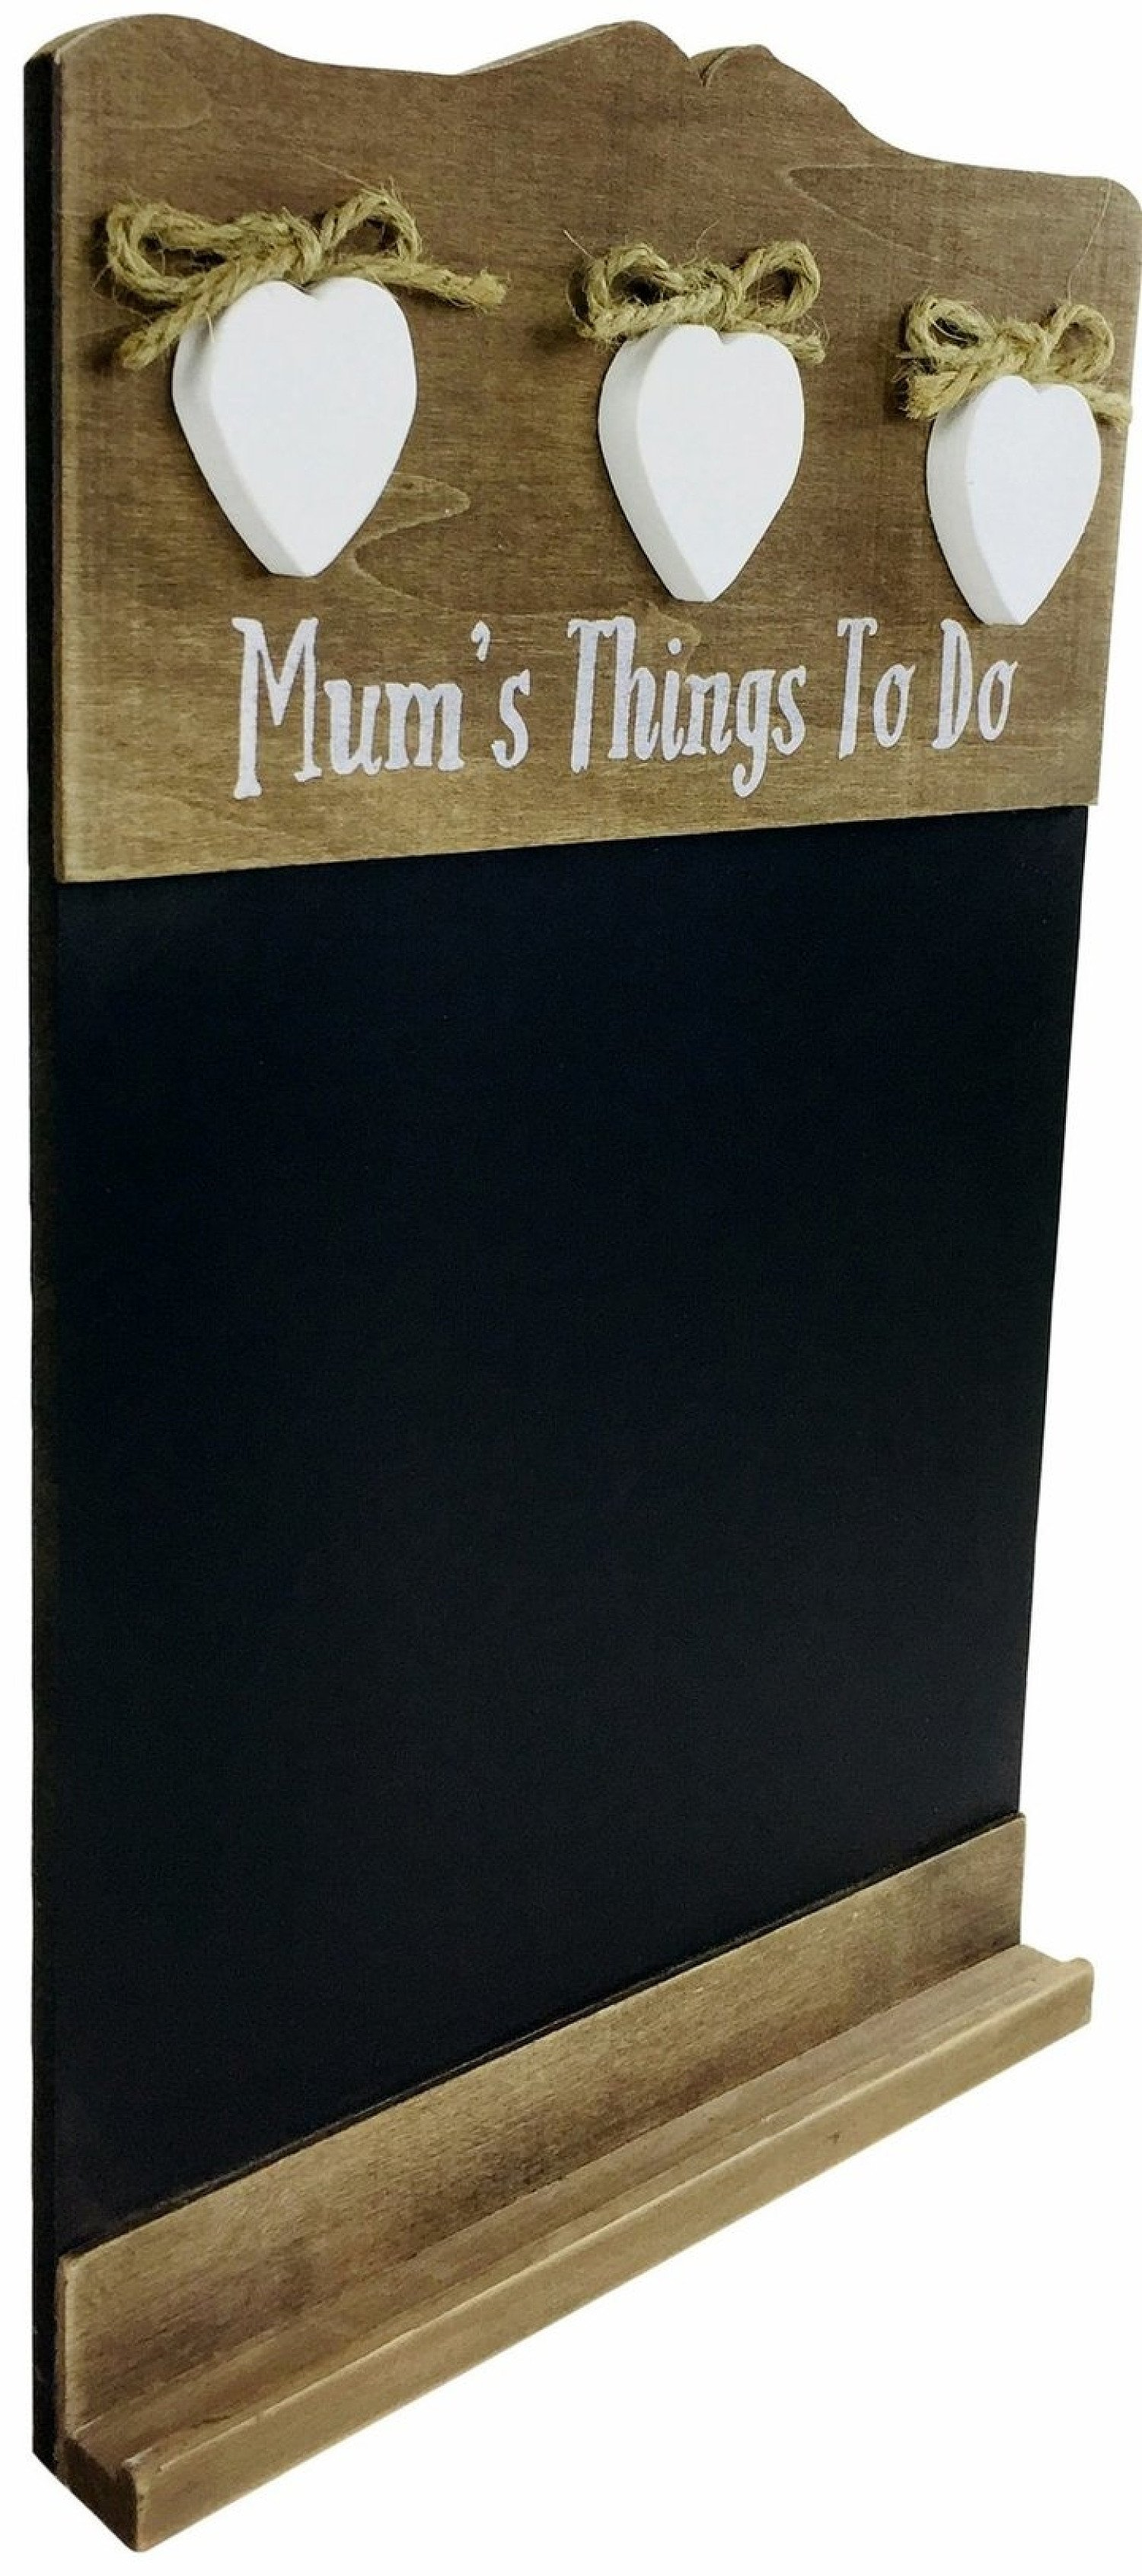 'Mum's Things To Do' Chalkboard With Three Love Hearts